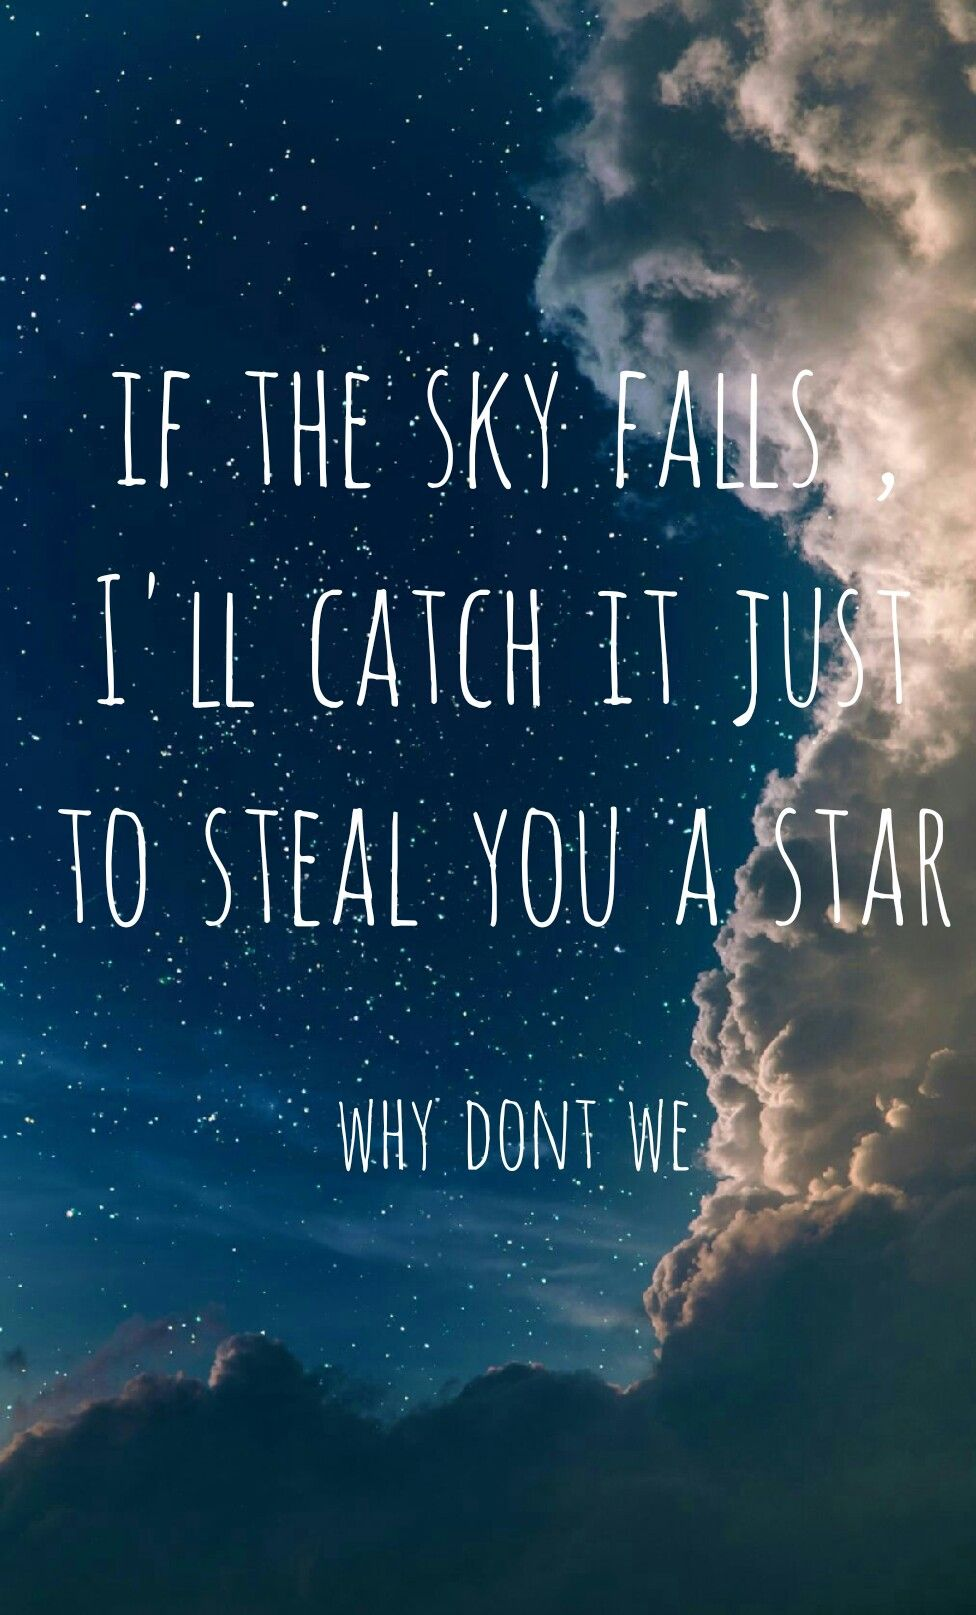 Why dont we Wallpaper Lyrics from why dont we 'free